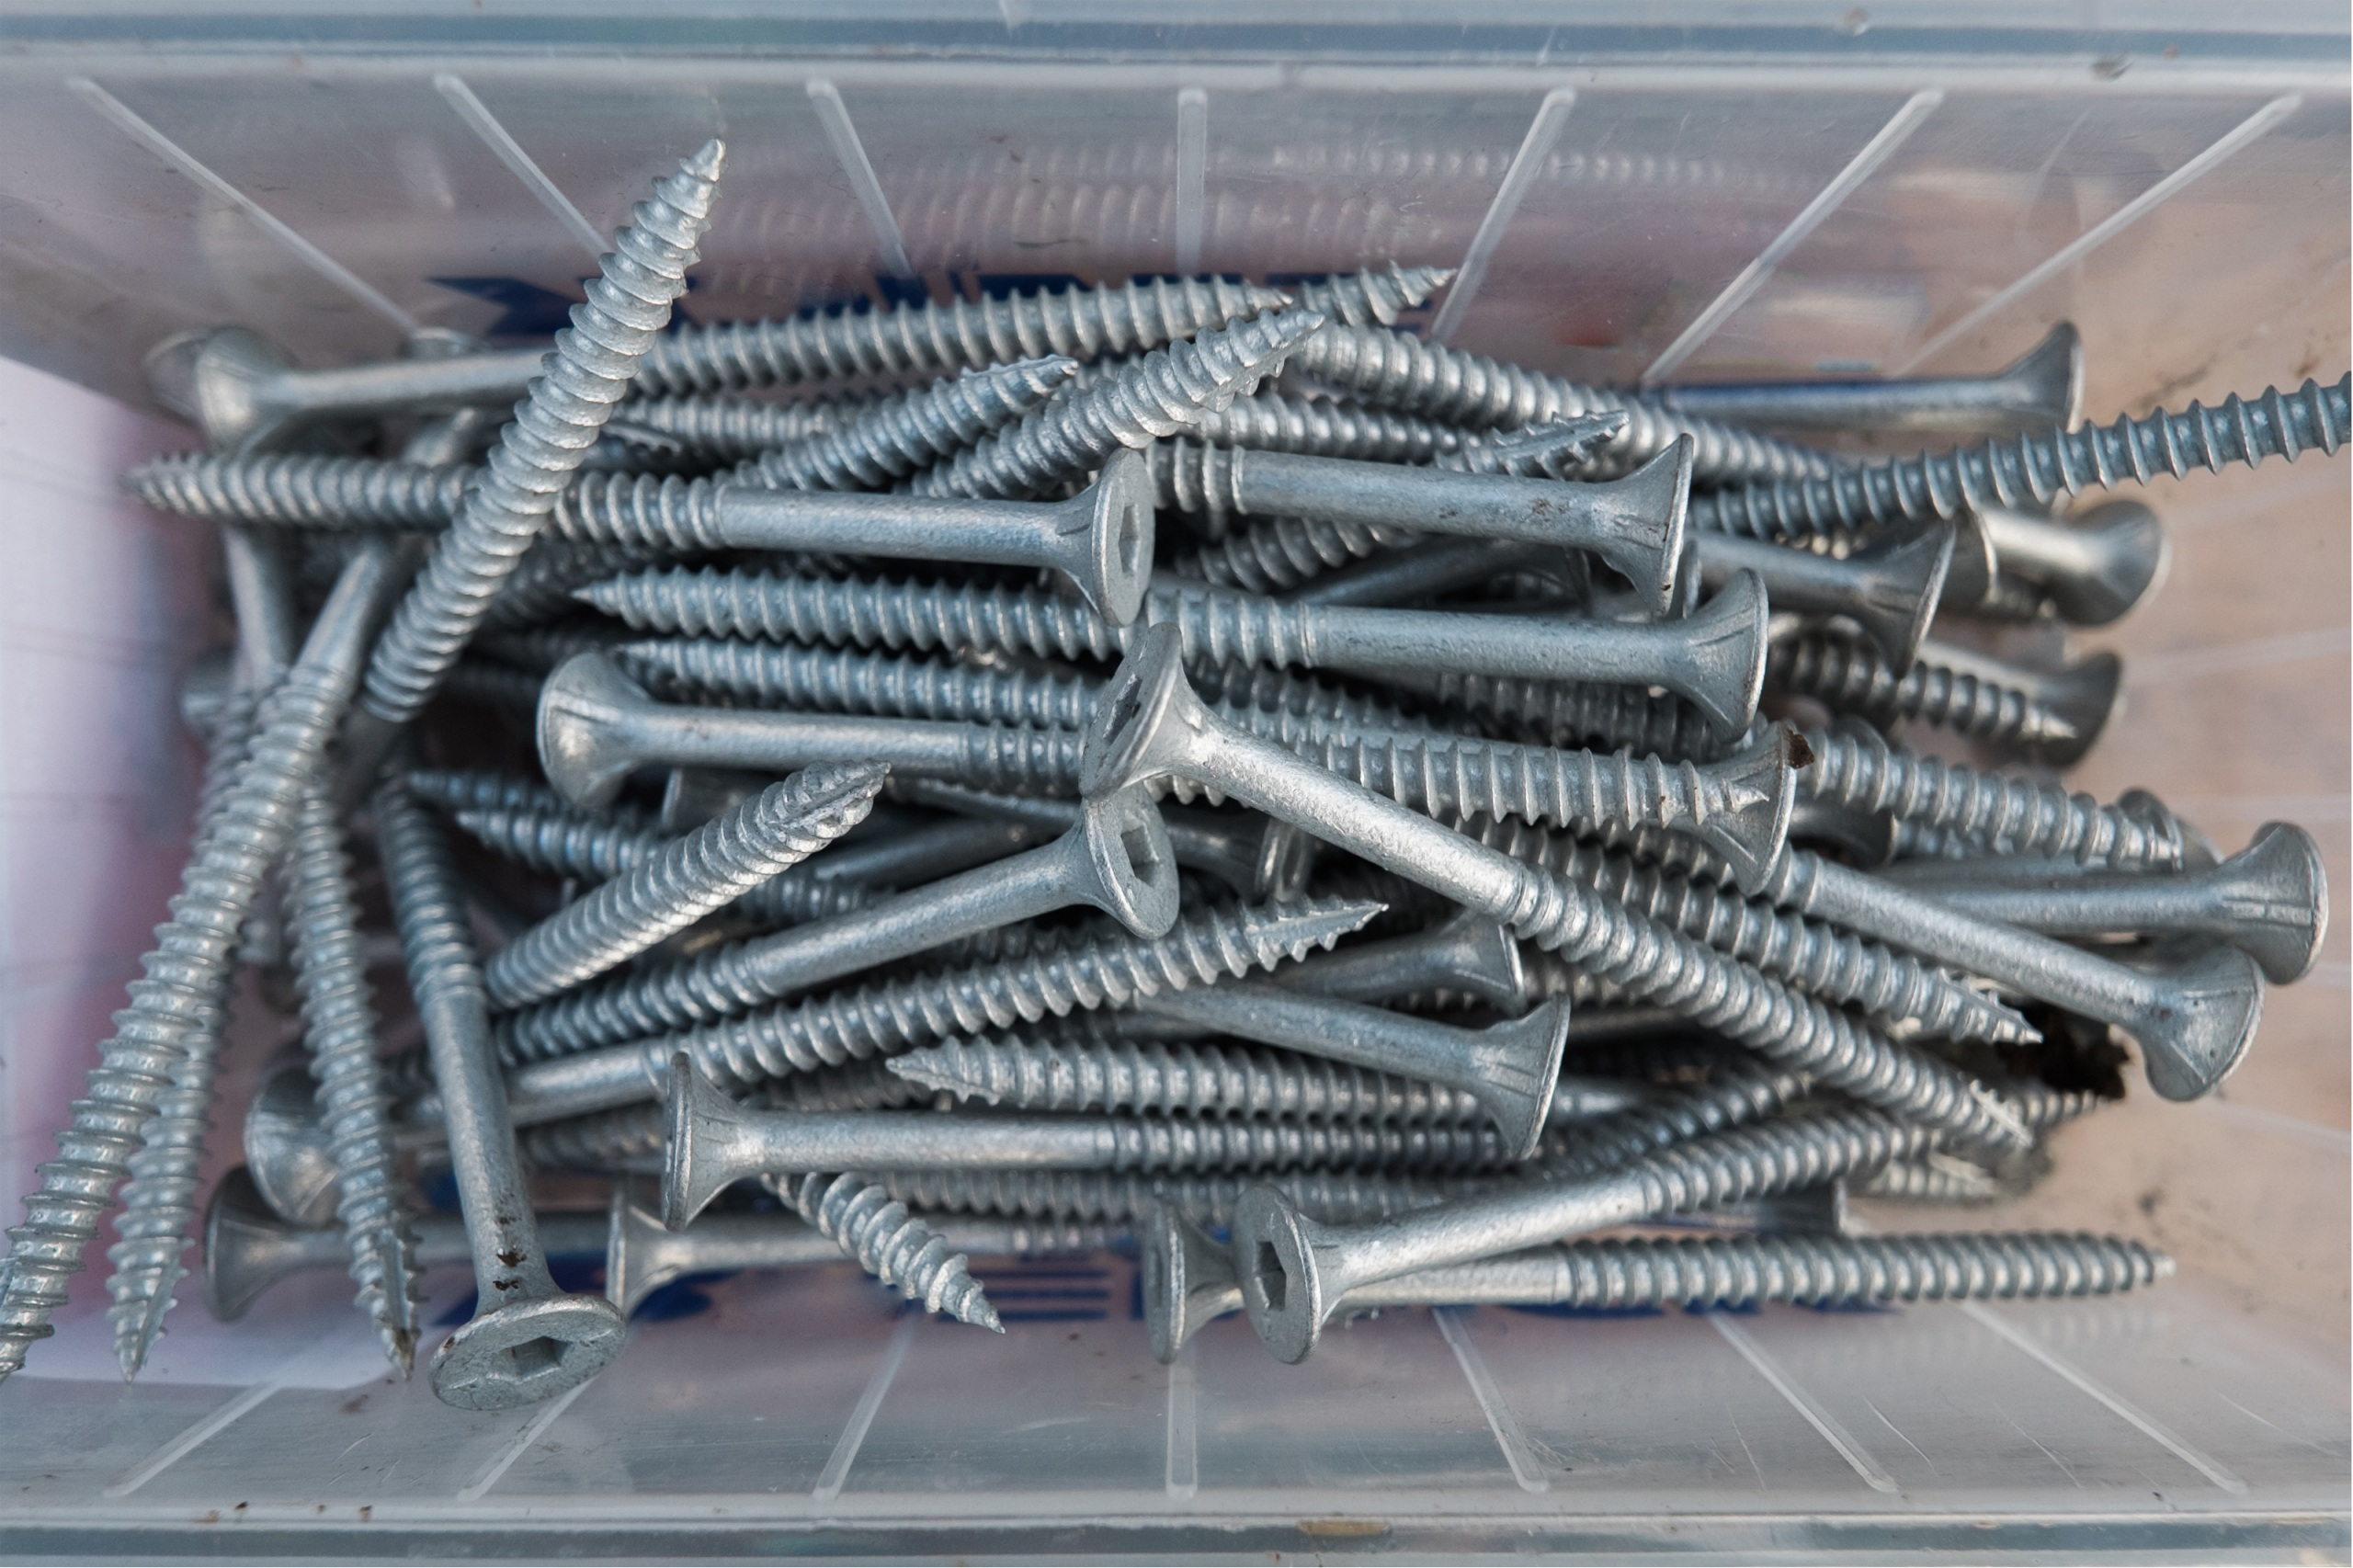 Box of screws